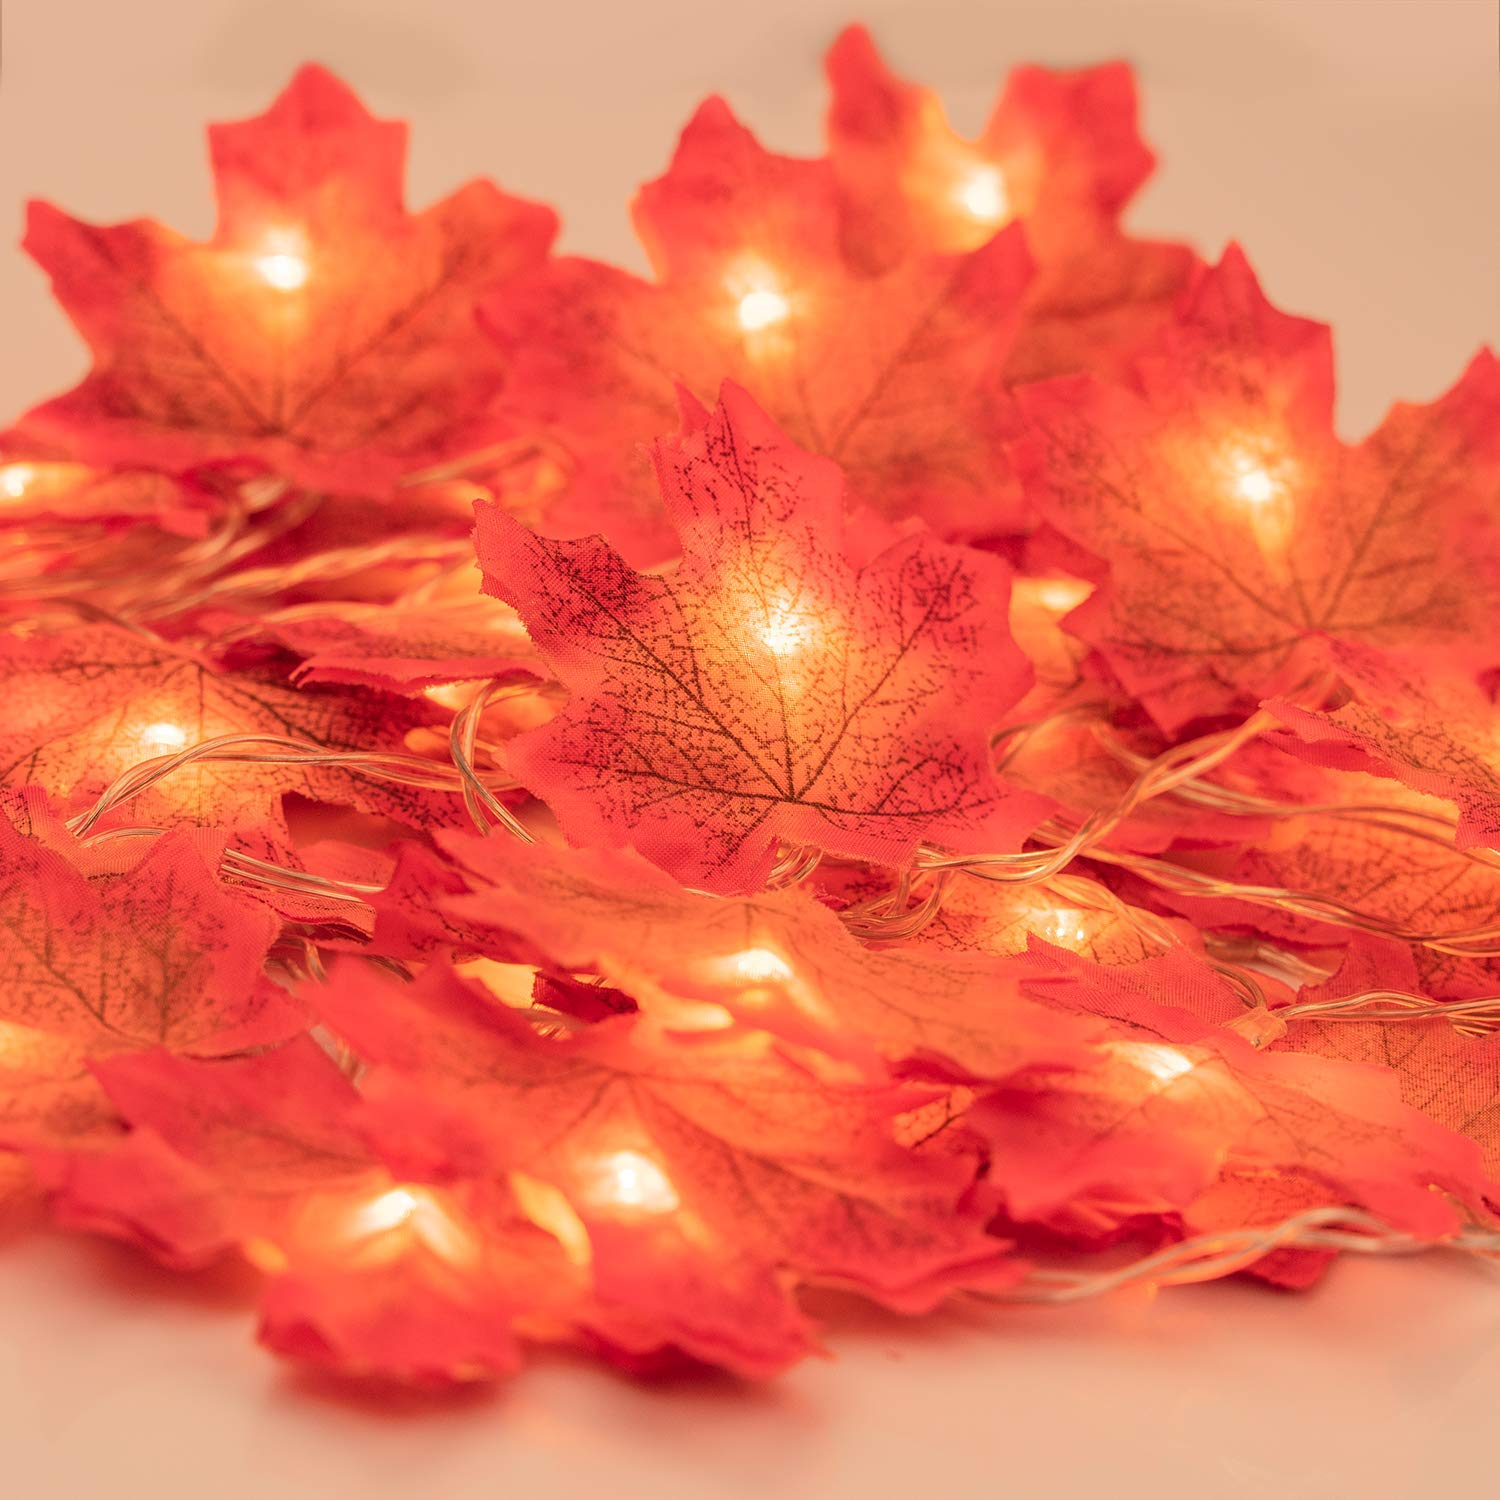 Fall Garland with Lights, Fall Maple Leaves String Light, 6.56ft /20 Led Maple Fairy Light, 3AA Battery Powered Led Maple Garland Harvest Autumn Leave Light for Halloween, Birthday Decoration Muscccm